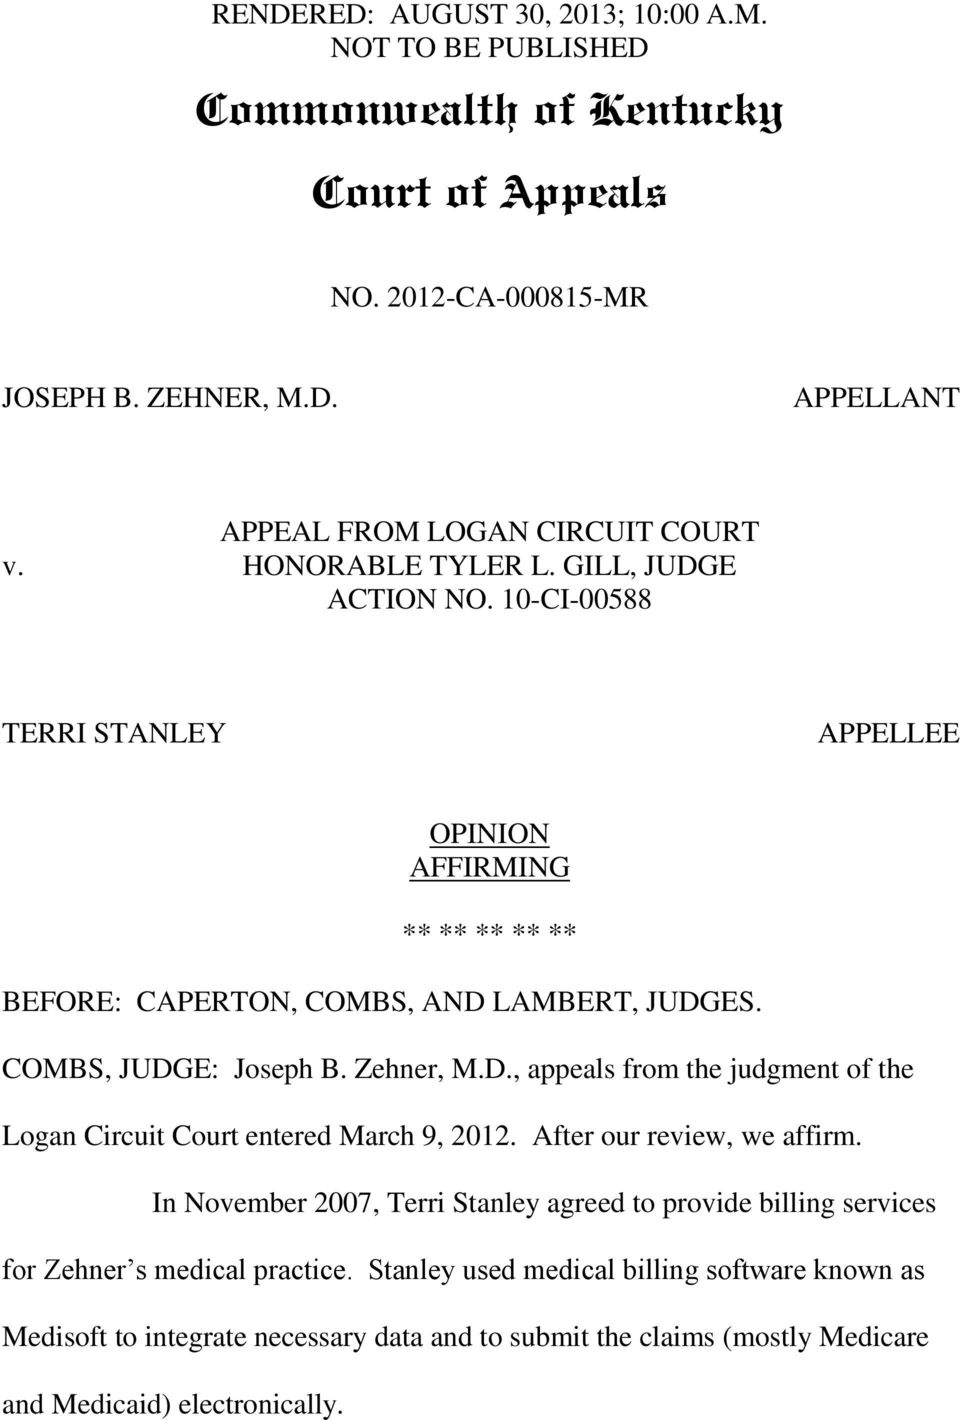 Zehner, M.D., appeals from the judgment of the Logan Circuit Court entered March 9, 2012. After our review, we affirm.